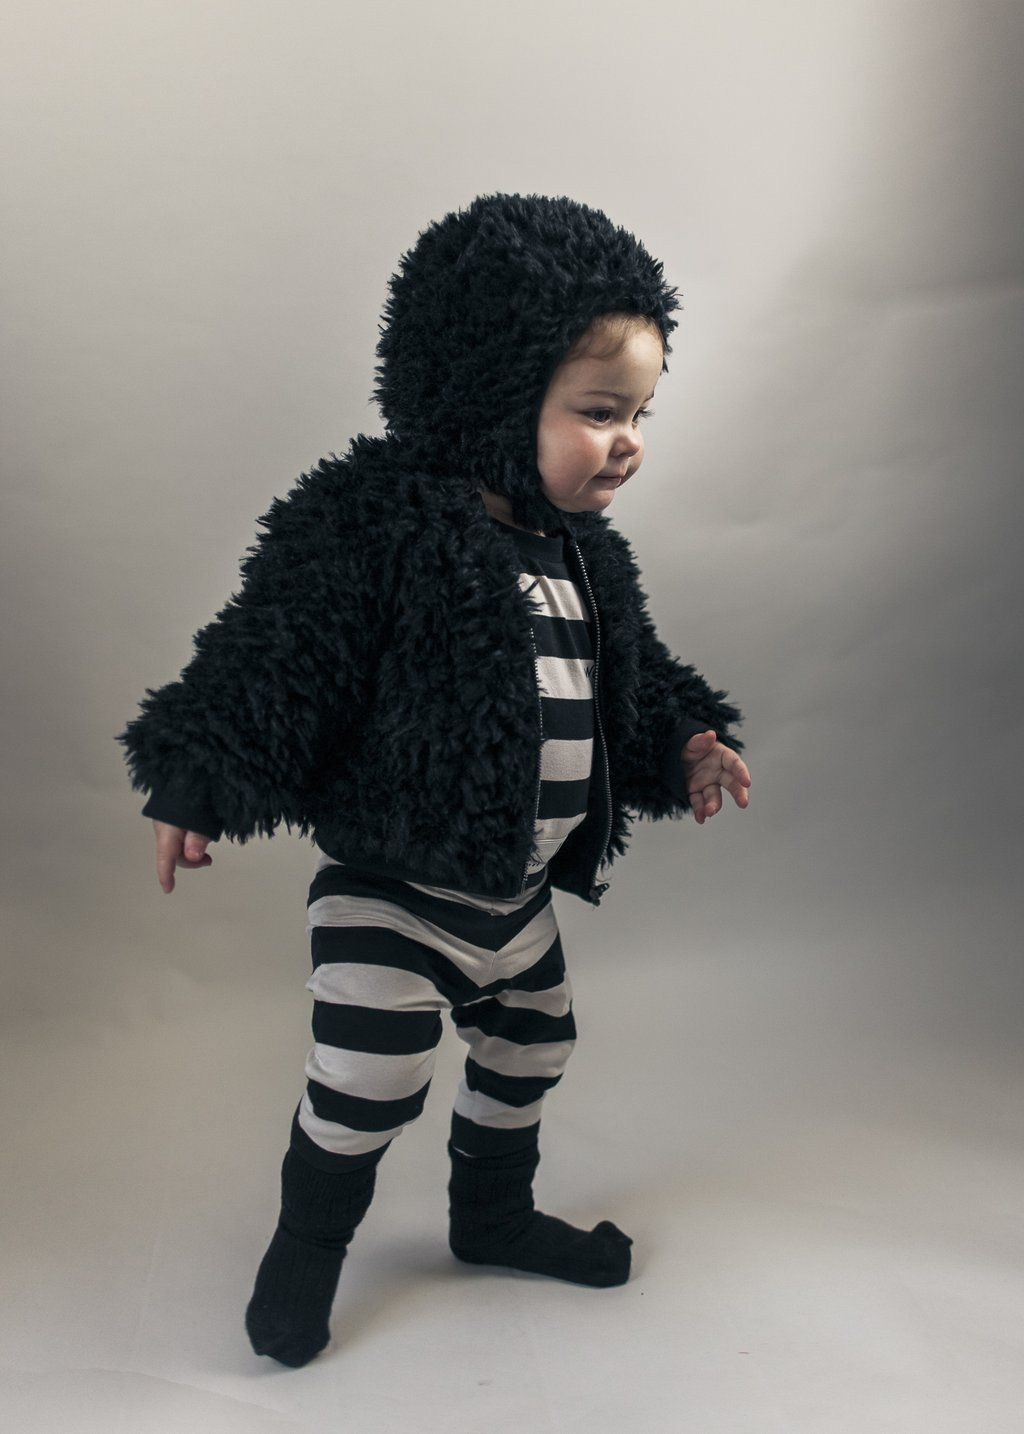 70a5e3536 Beau Loves - Furry baby jacket - black - Scout   Co Kids - AW18 ...